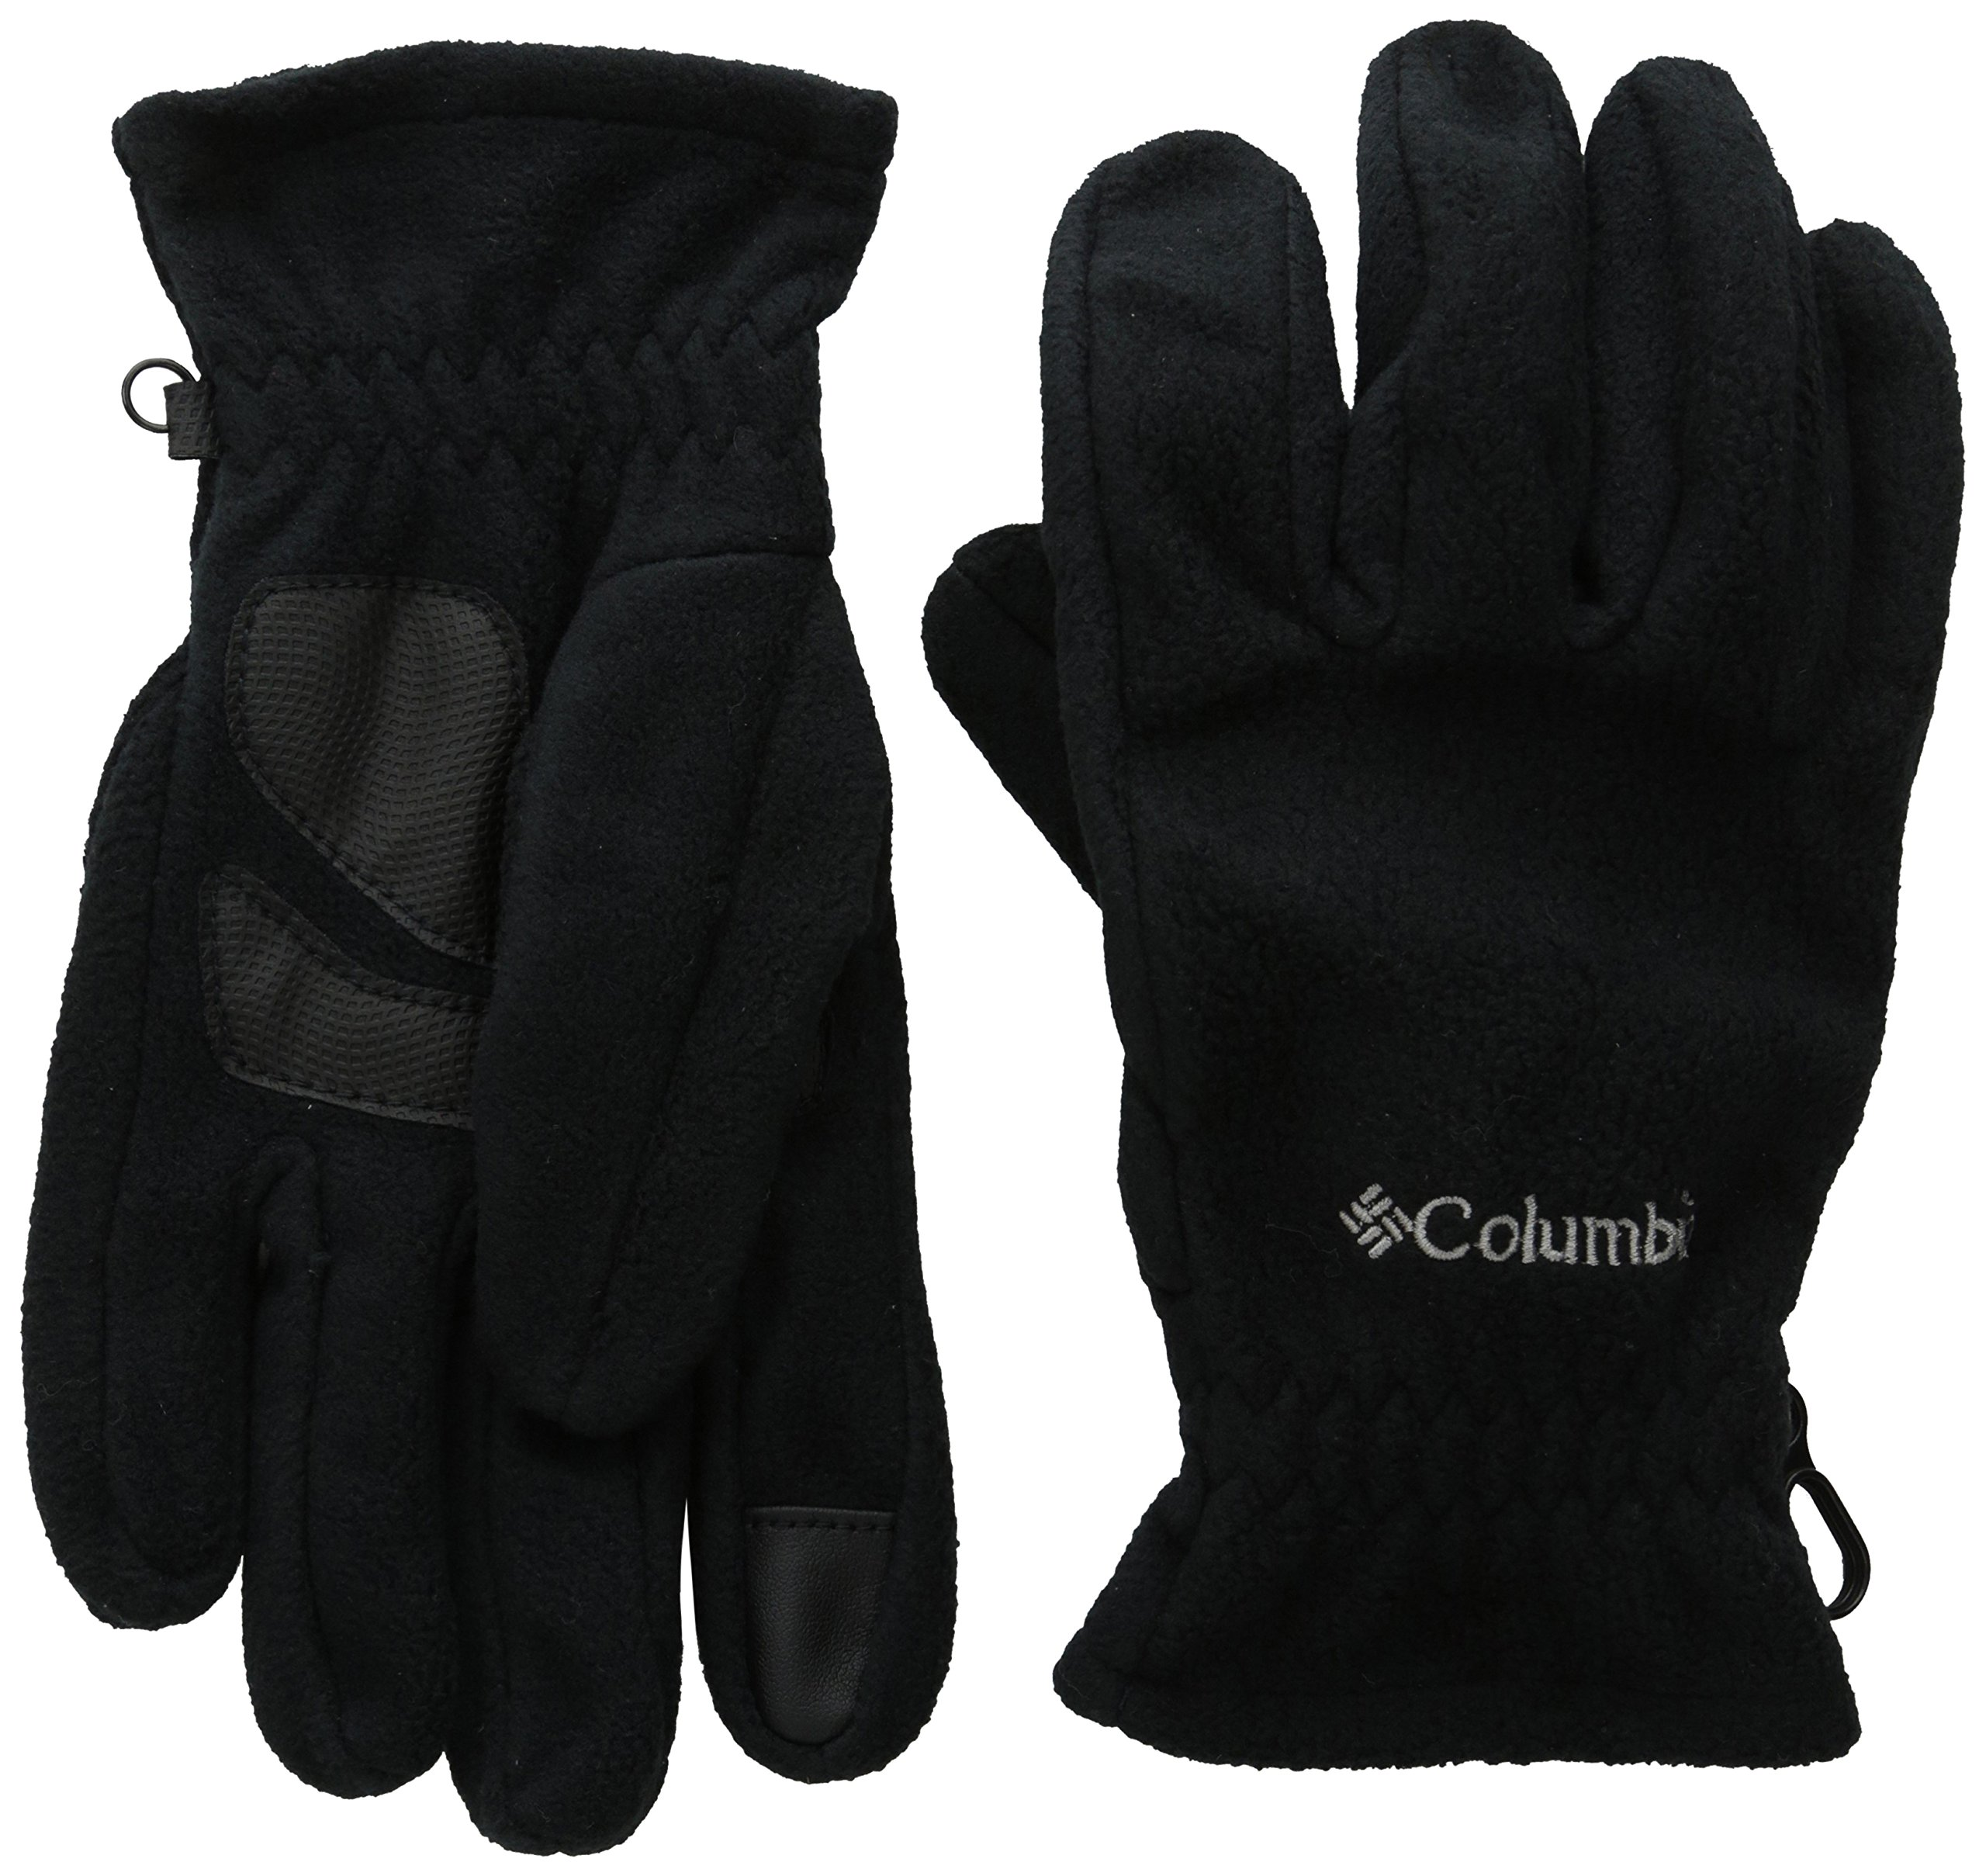 Columbia Women's Thermarator Gloves, Black, X-Large